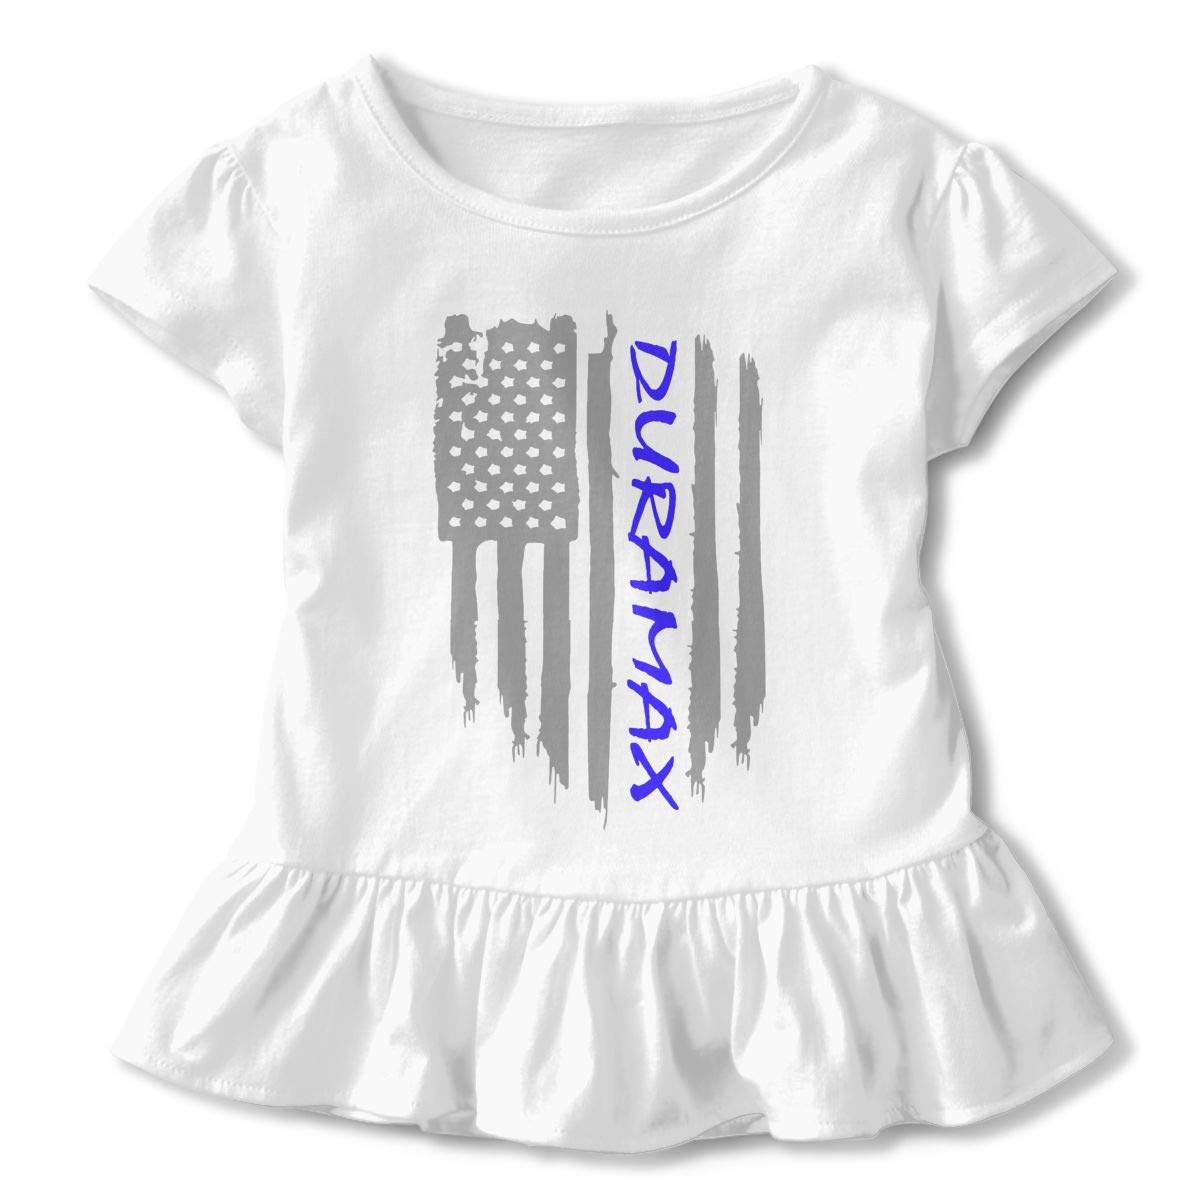 HYBDX9T Toddler Baby Girl American Flag Duramax Funny Short Sleeve Cotton T Shirts Basic Tops Tee Clothes